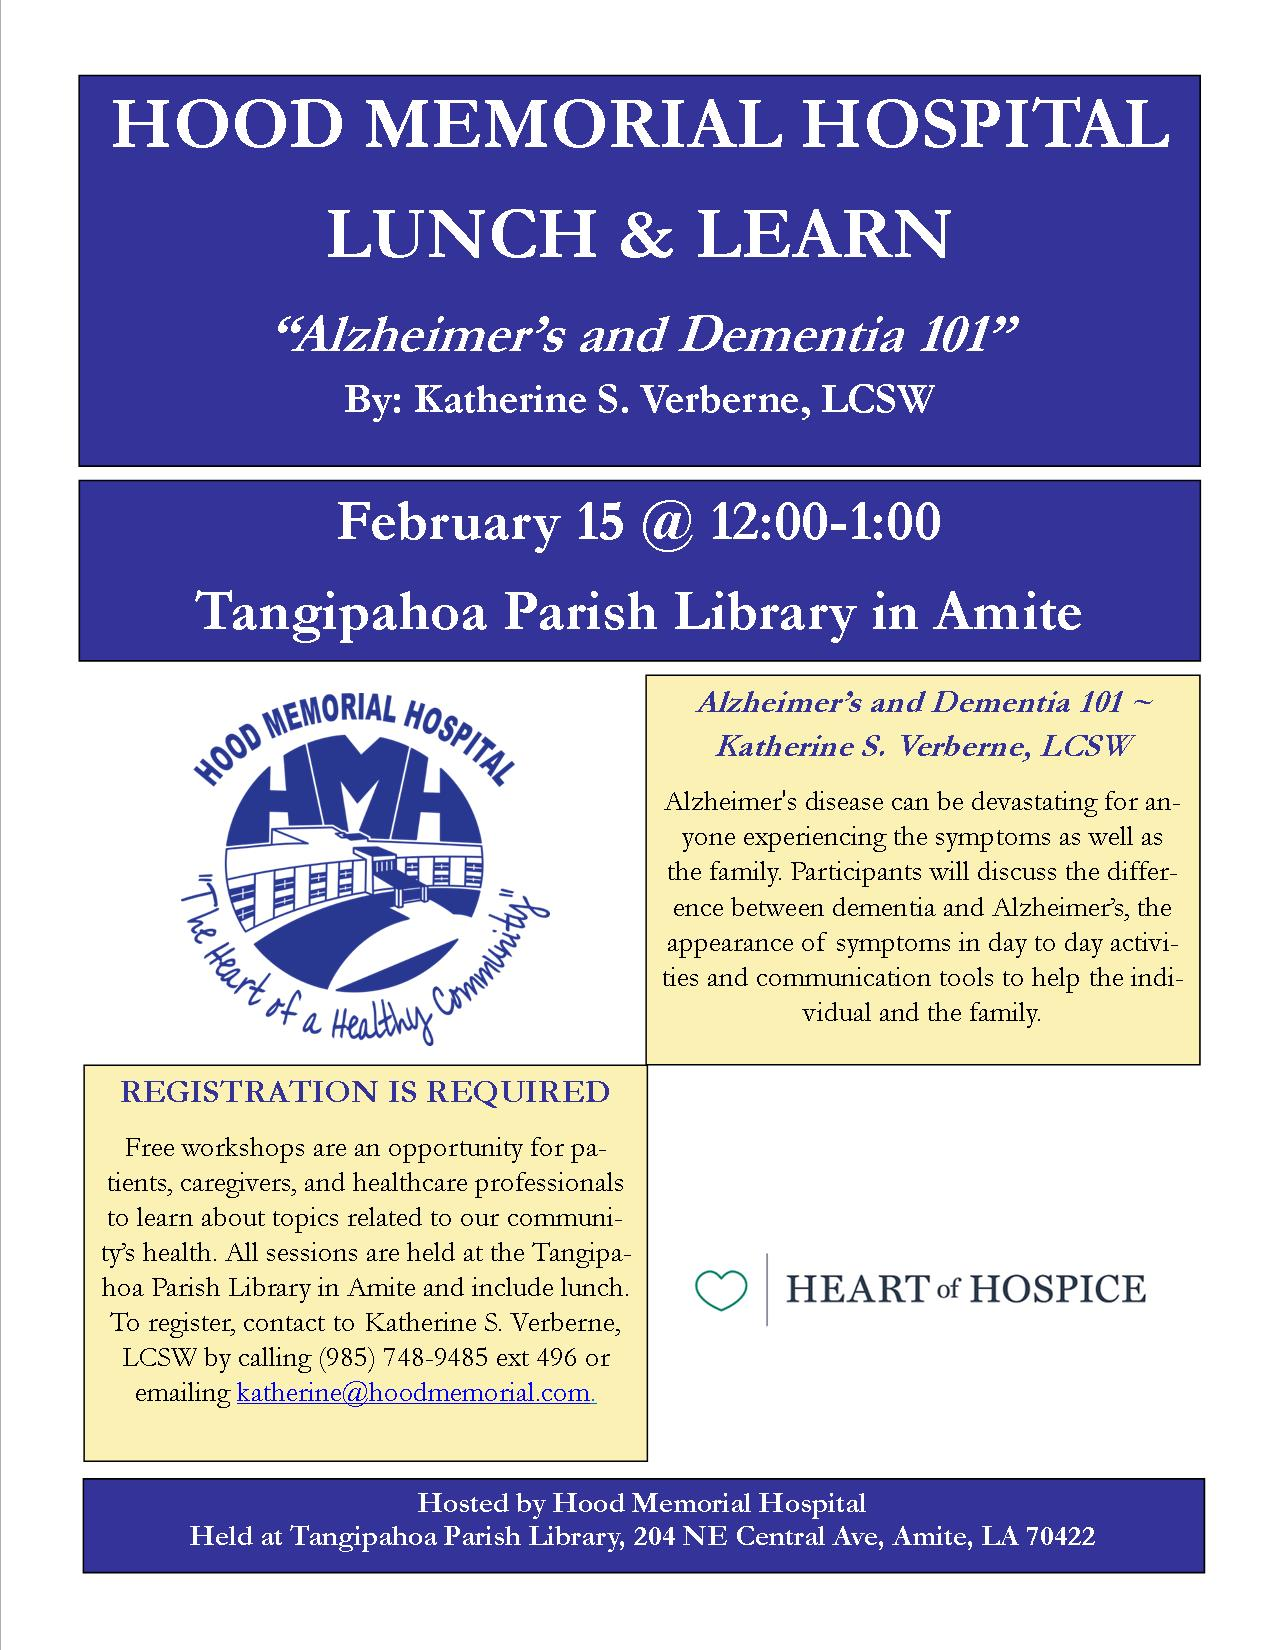 February Lunch & Learn